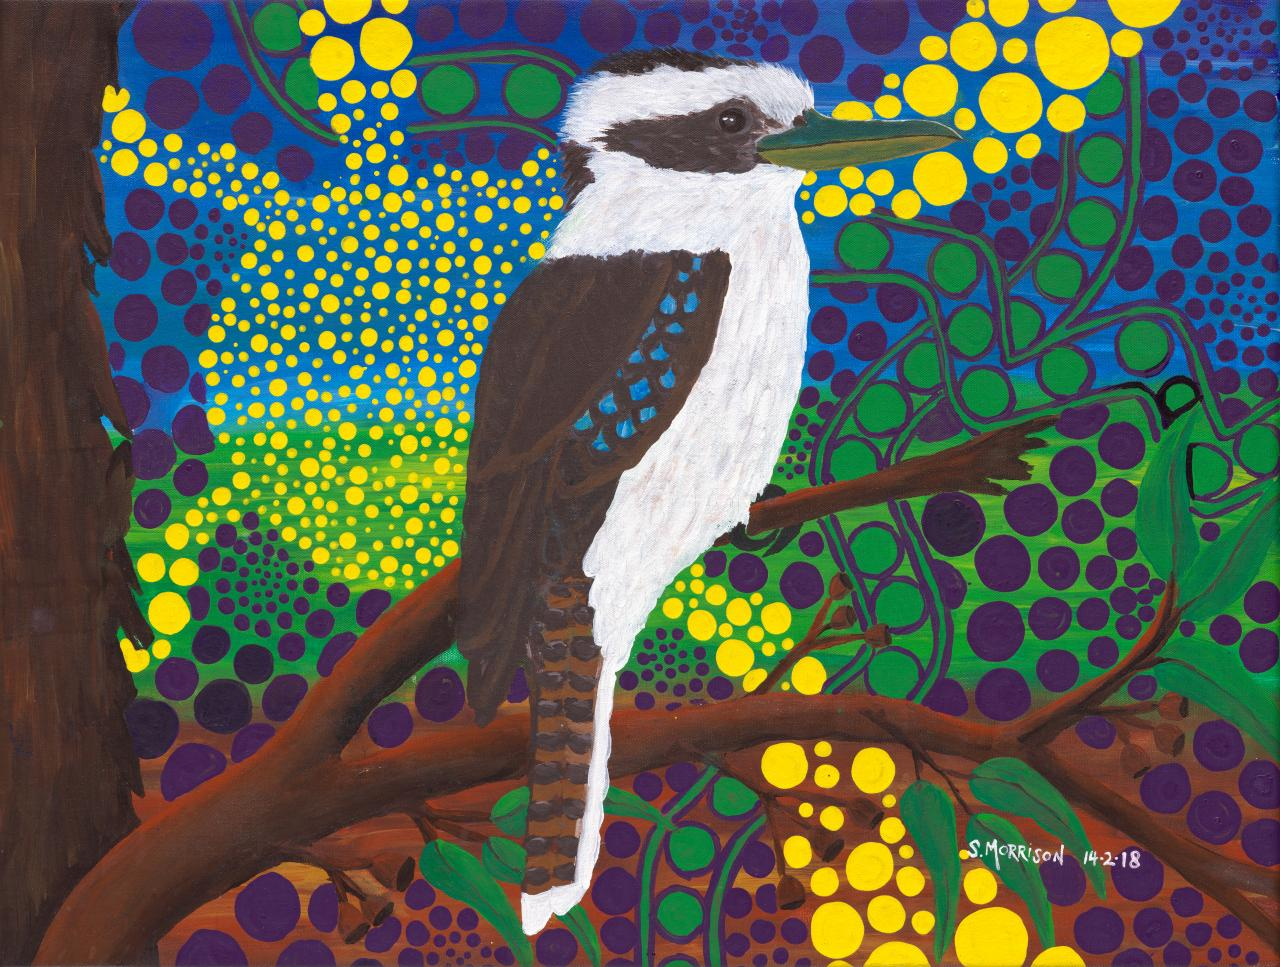 Journey of the kookaburra